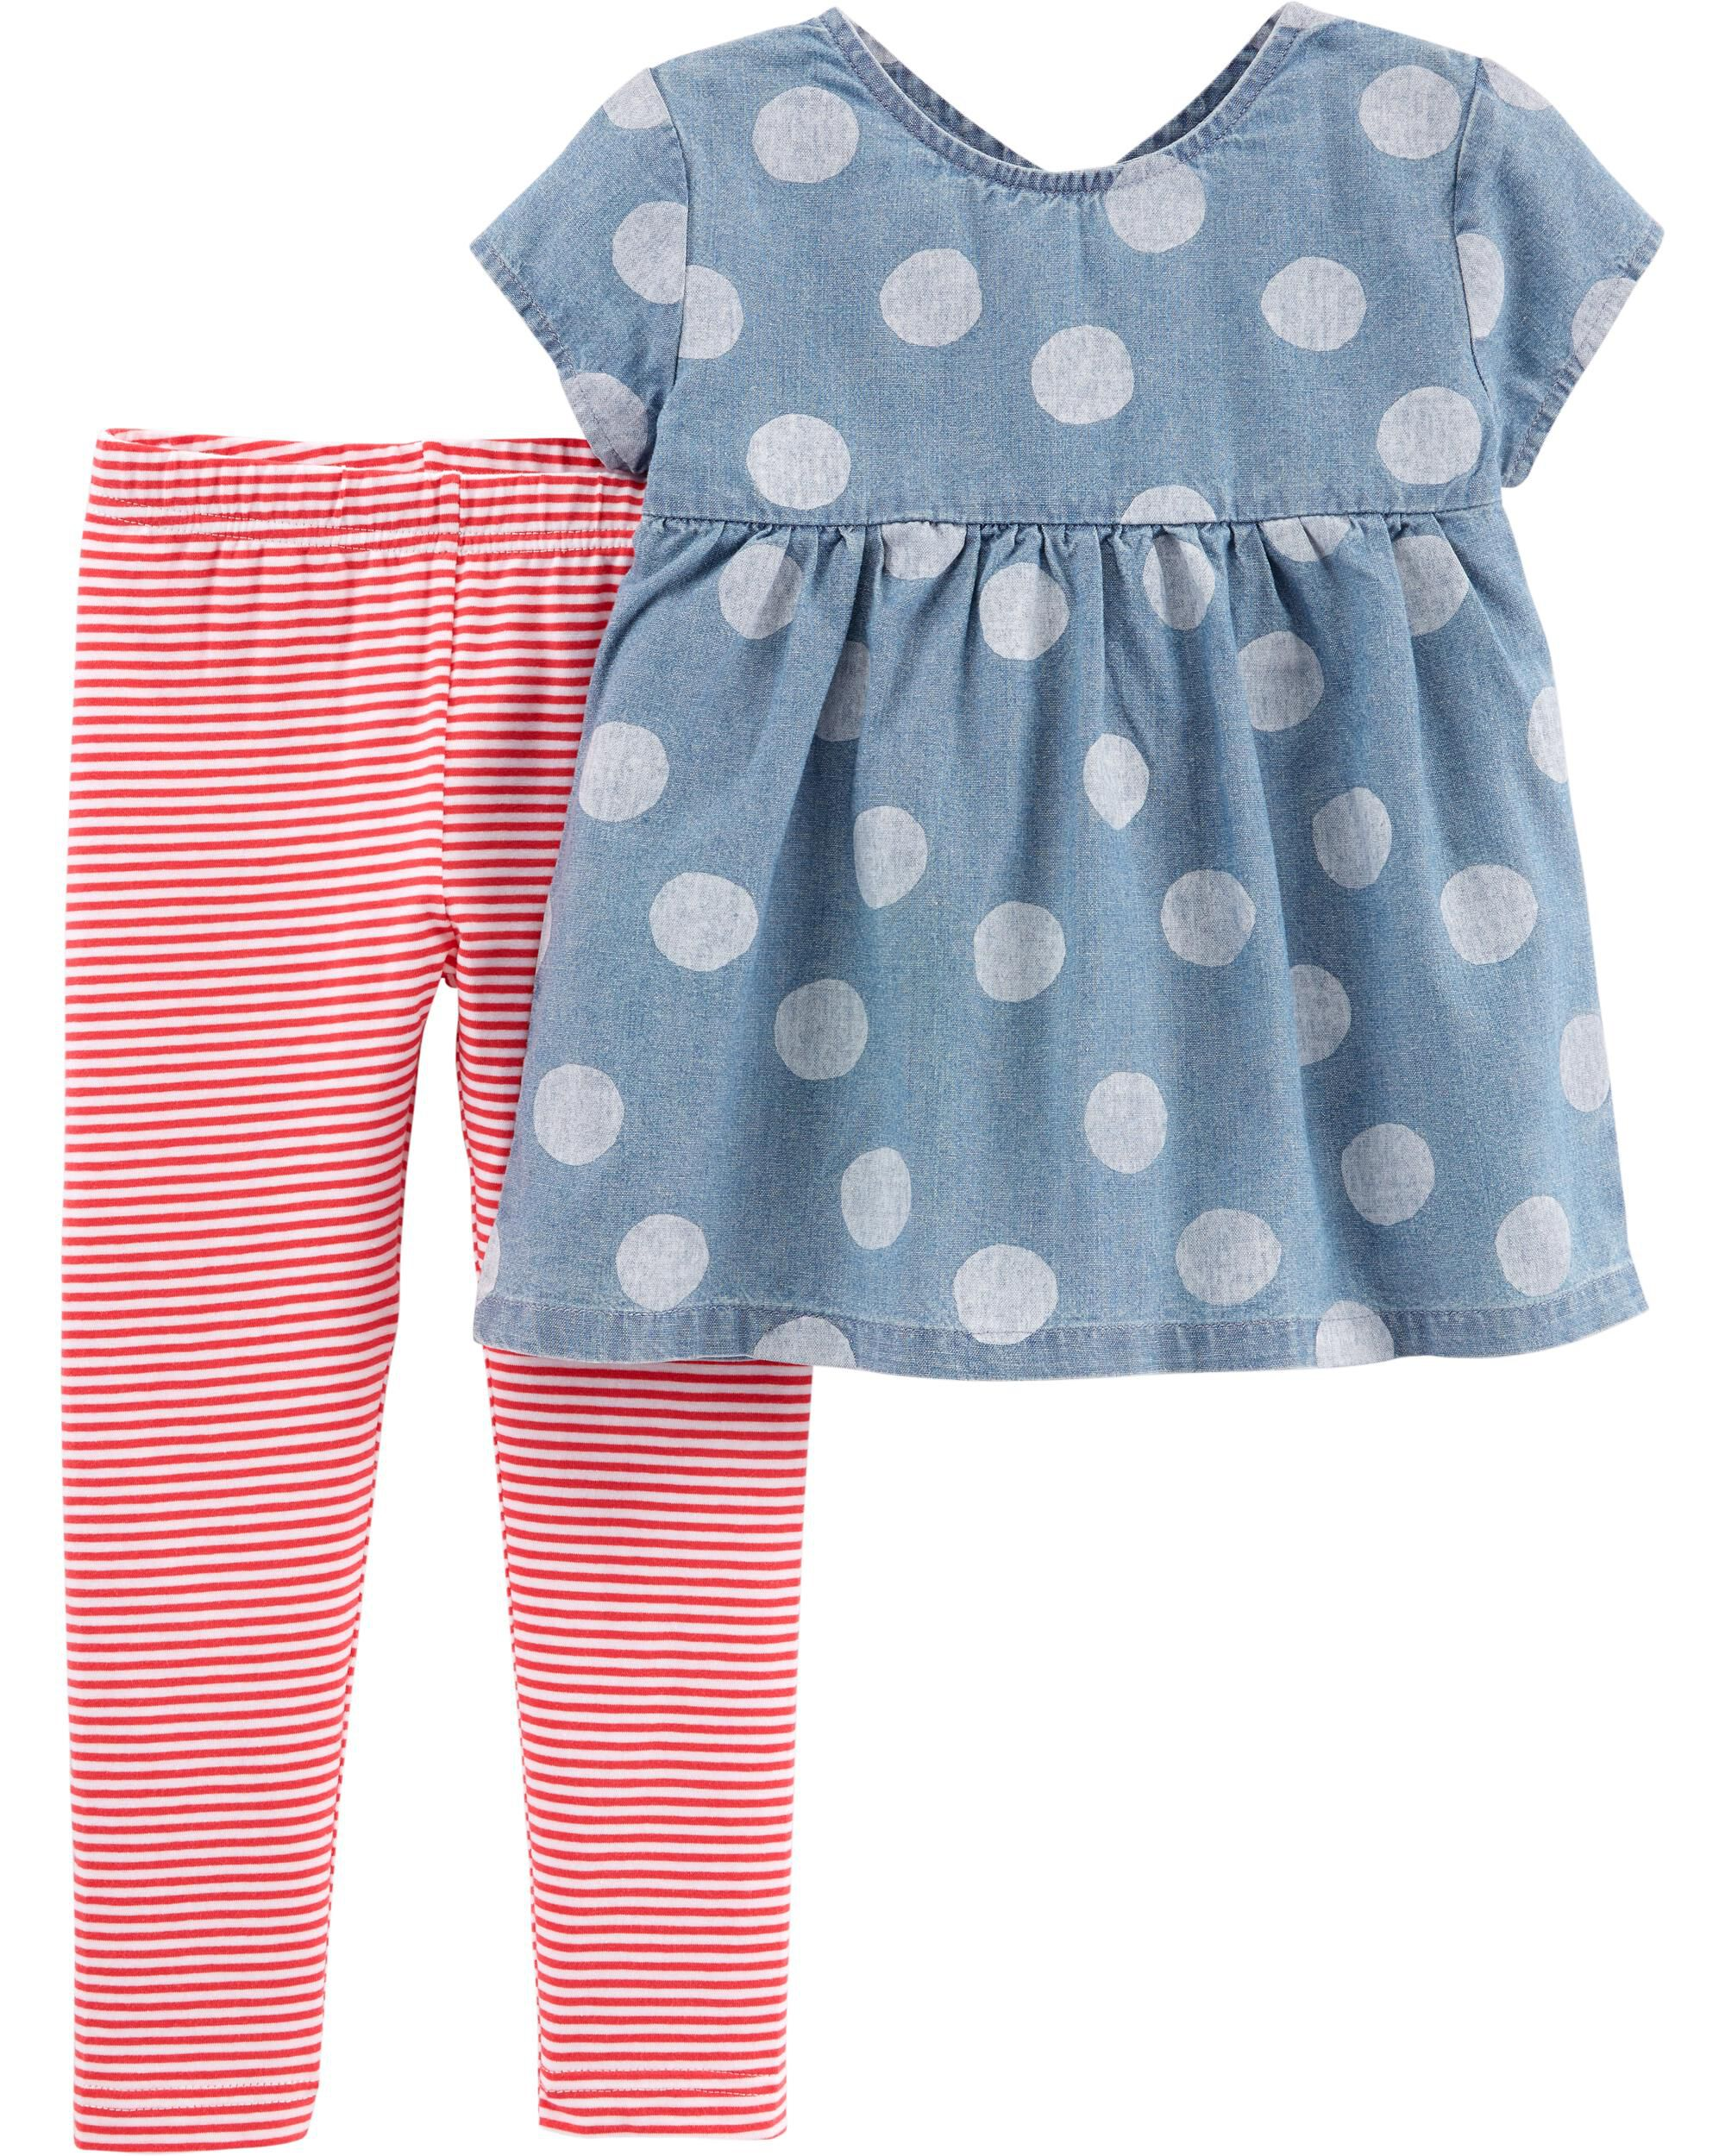 0ea92f420 2-Piece Polka Dot Chambray Top & Striped Legging Set. Loading zoom